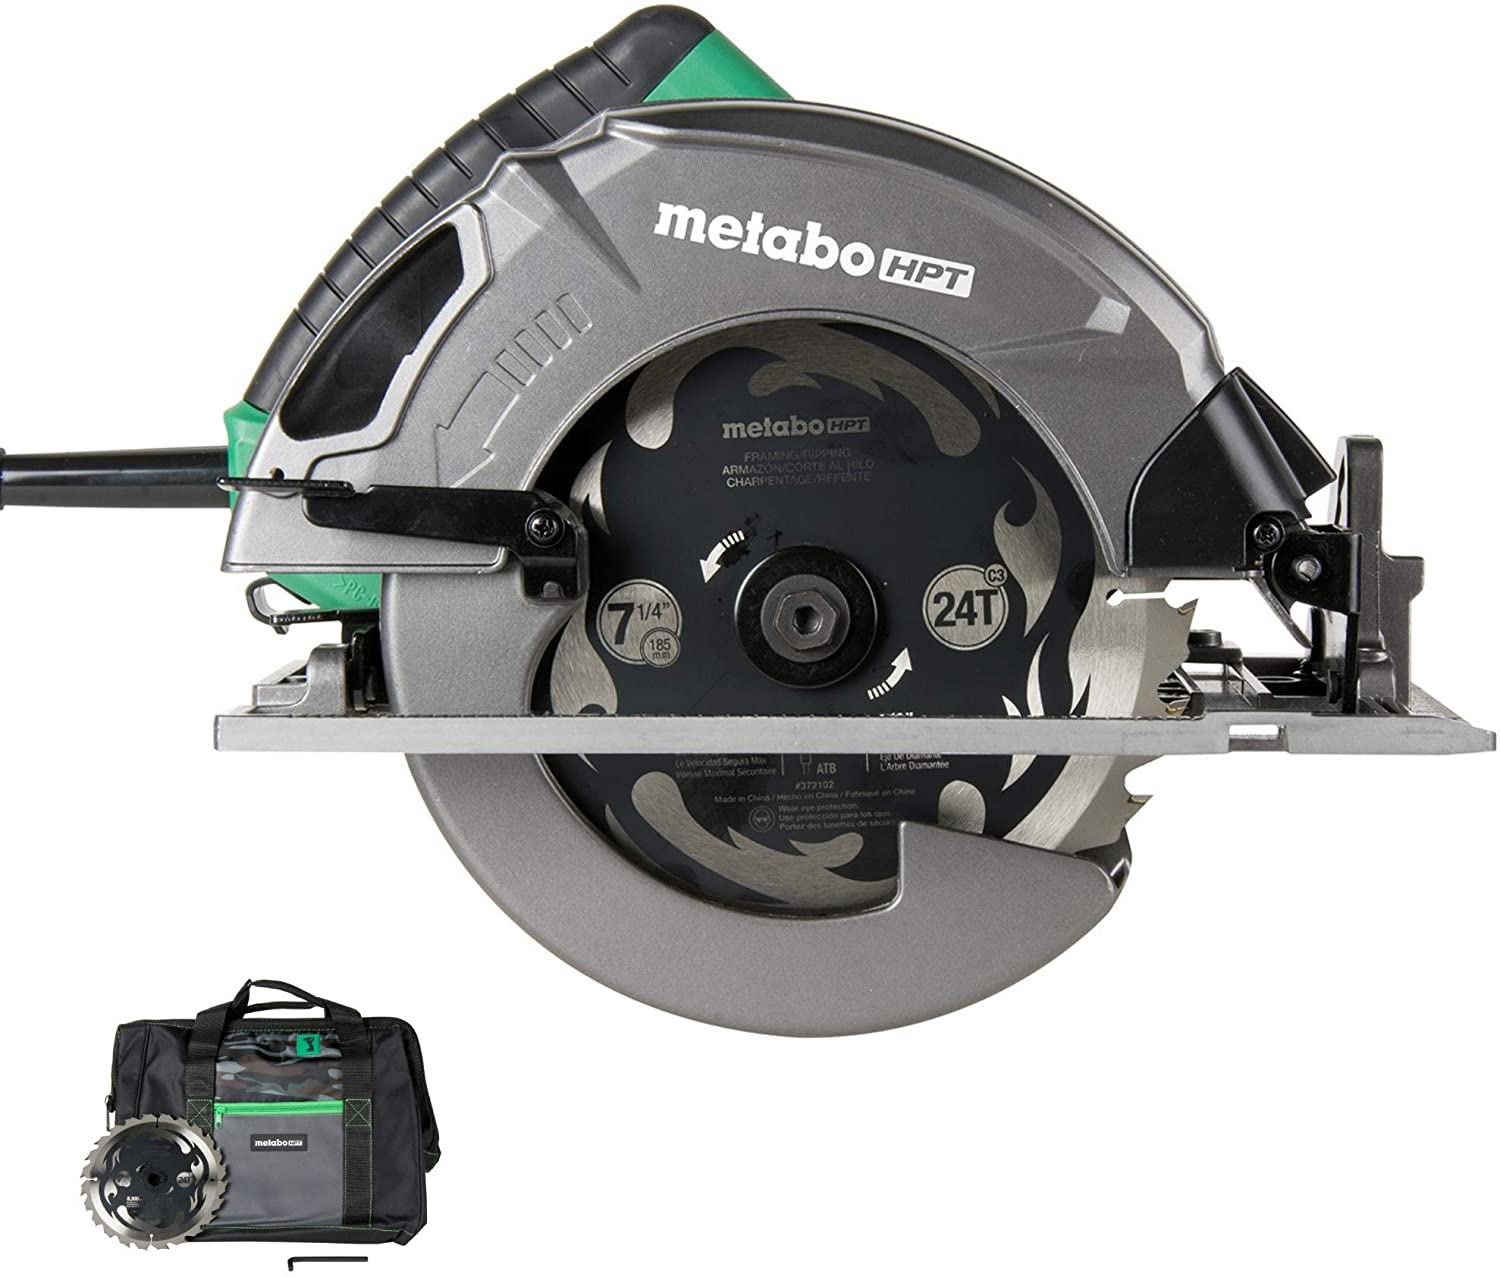 Amazon Com Metabo Hpt 7 1 4 Circular Saw Kit 6 000 Rpm 15 Amp Motor Integrated Dust Blower 24t Premium Framing Ripping Blade Single Handed Bevel Adjustment C7sb3 Home Improvement